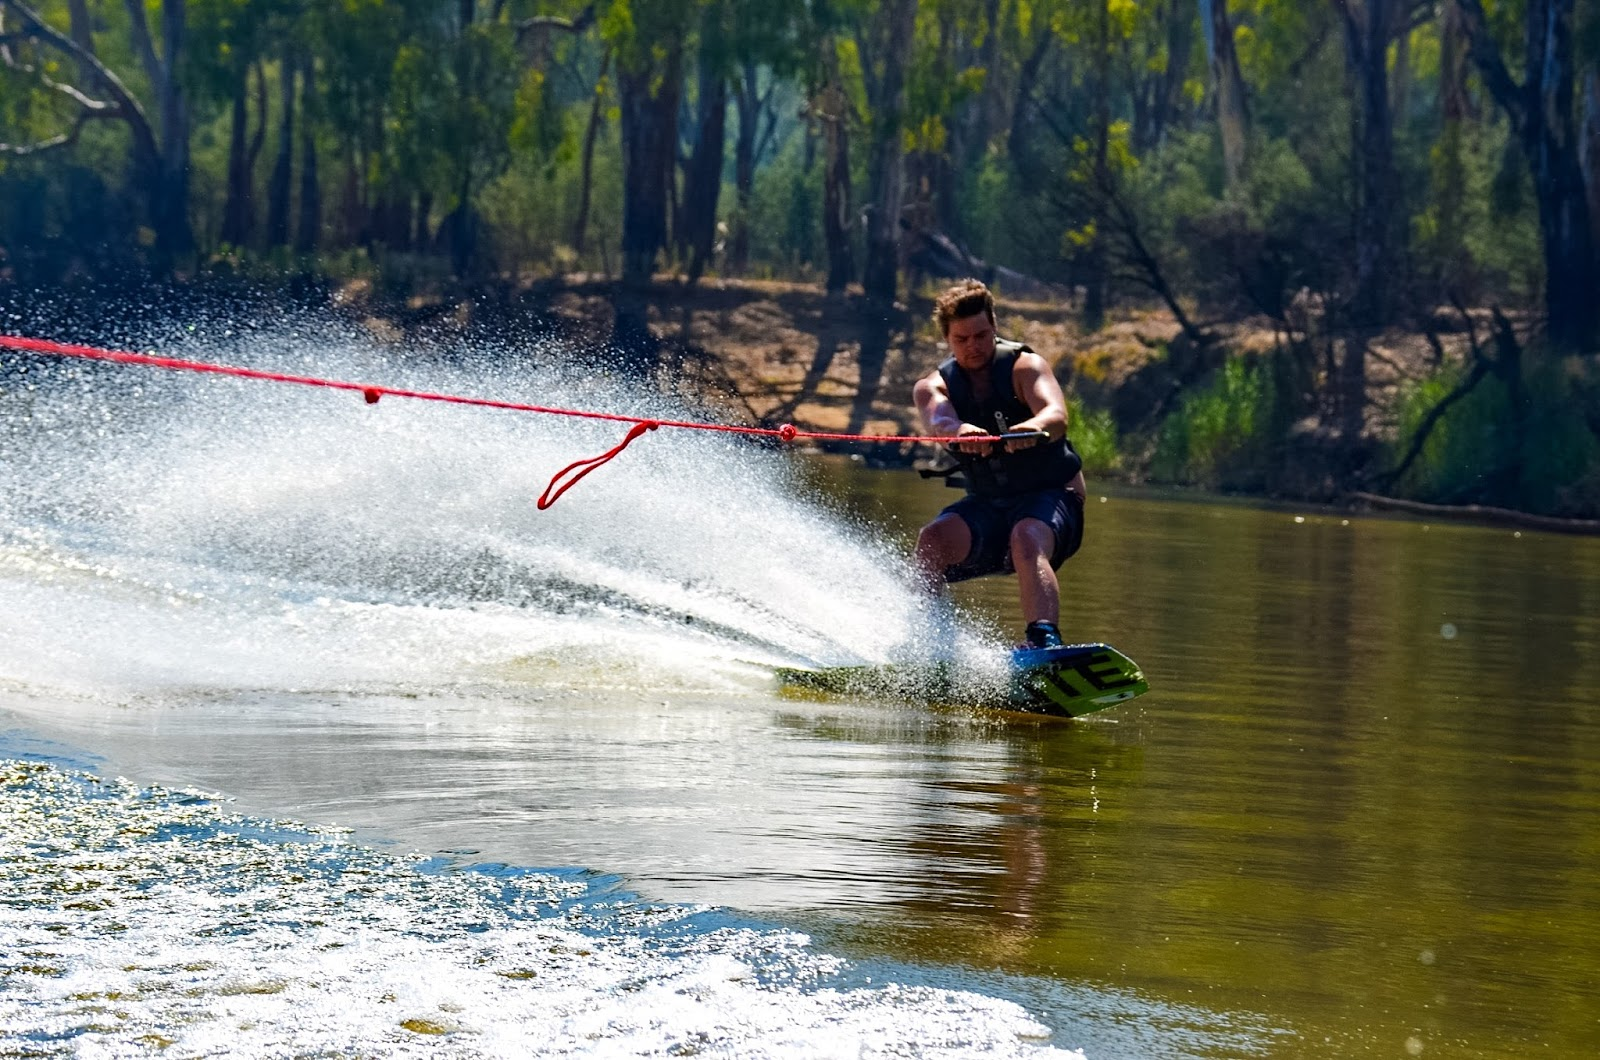 wake boarding on the murray river